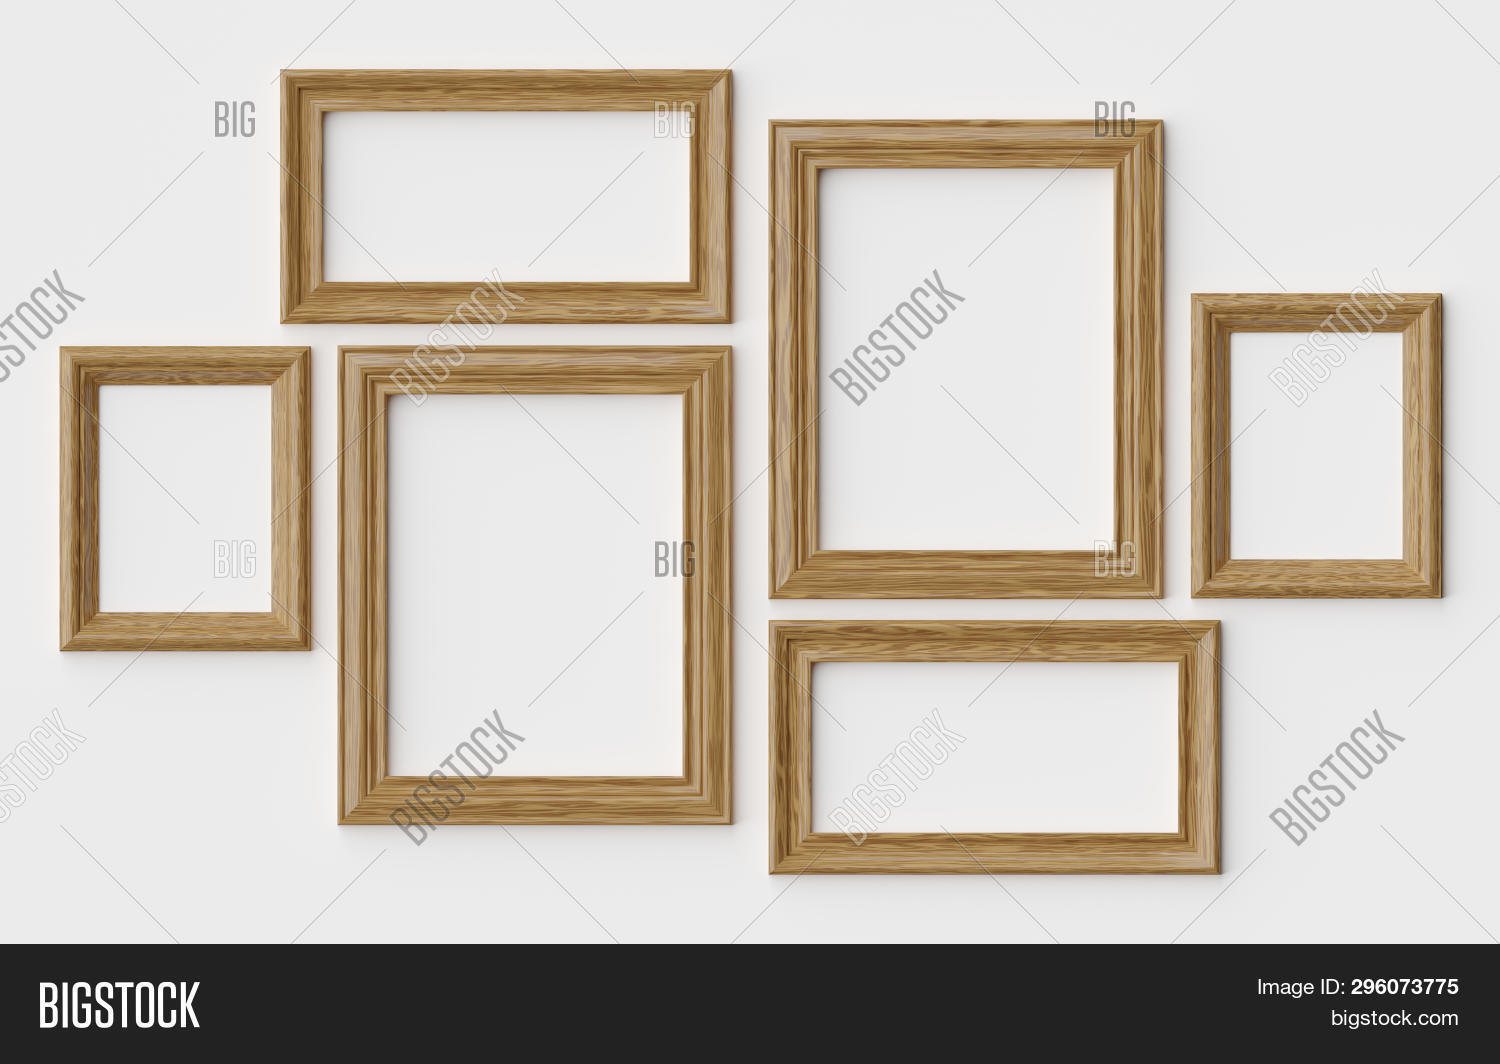 3d,art,artwork,background,blank,board,border,brown,closeup,collection,copy-space,decor,decoration,design,empty,exhibition,frame,gallery,illustration,image,indoor,light,mock-up,mockup,modern,nobody,painting,pattern,photo,photography,picture,poster,realistic,rectangle,render,rendered,set,shadow,simple,square,template,wall,white,wood,wooden